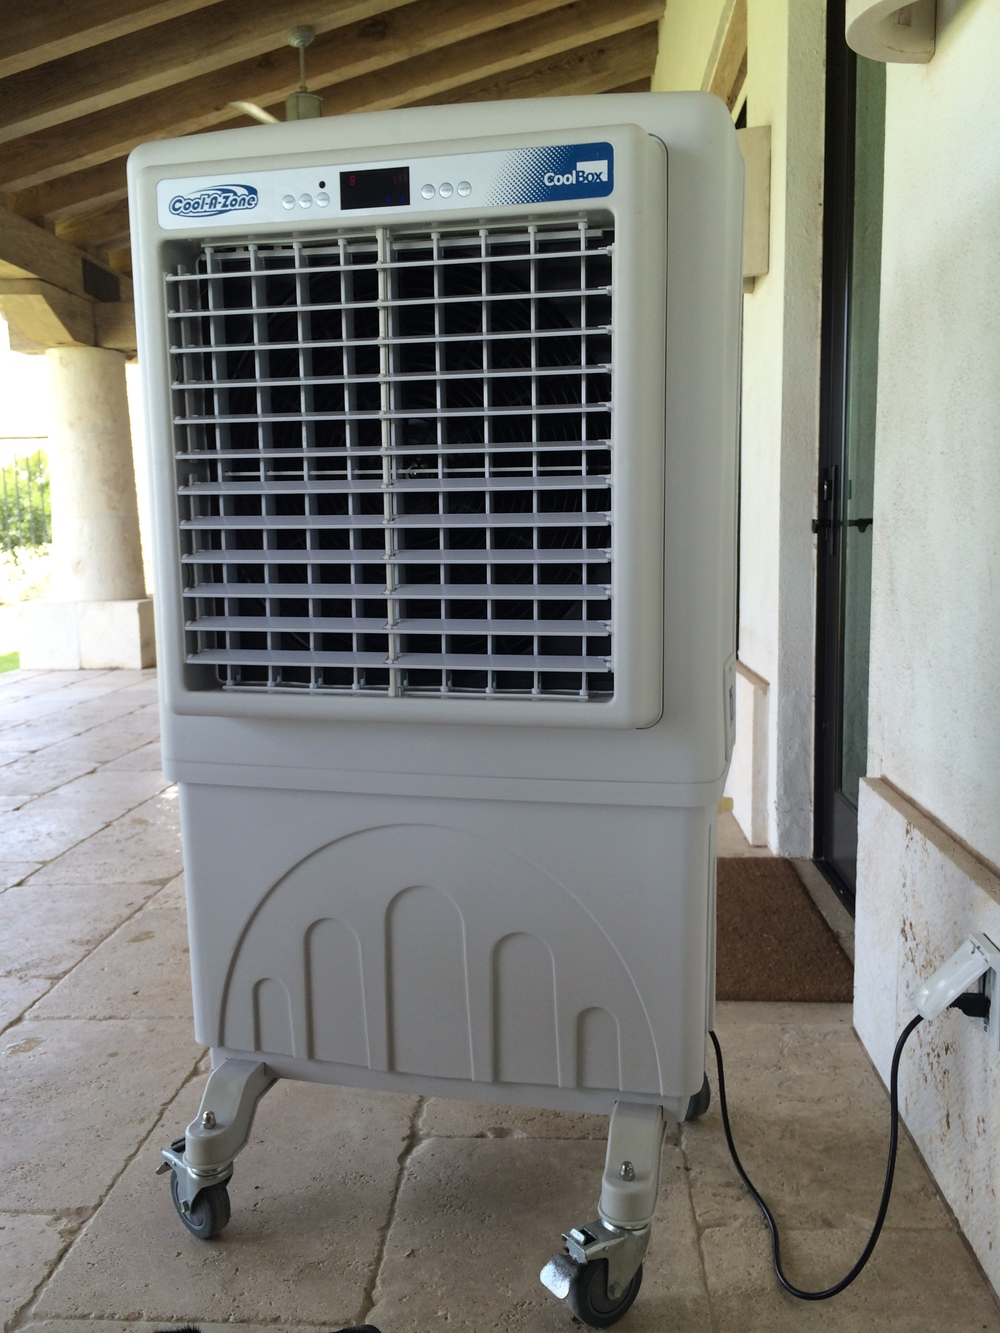 Space Cooling with Cool-A-Zone - Outdoor A/C